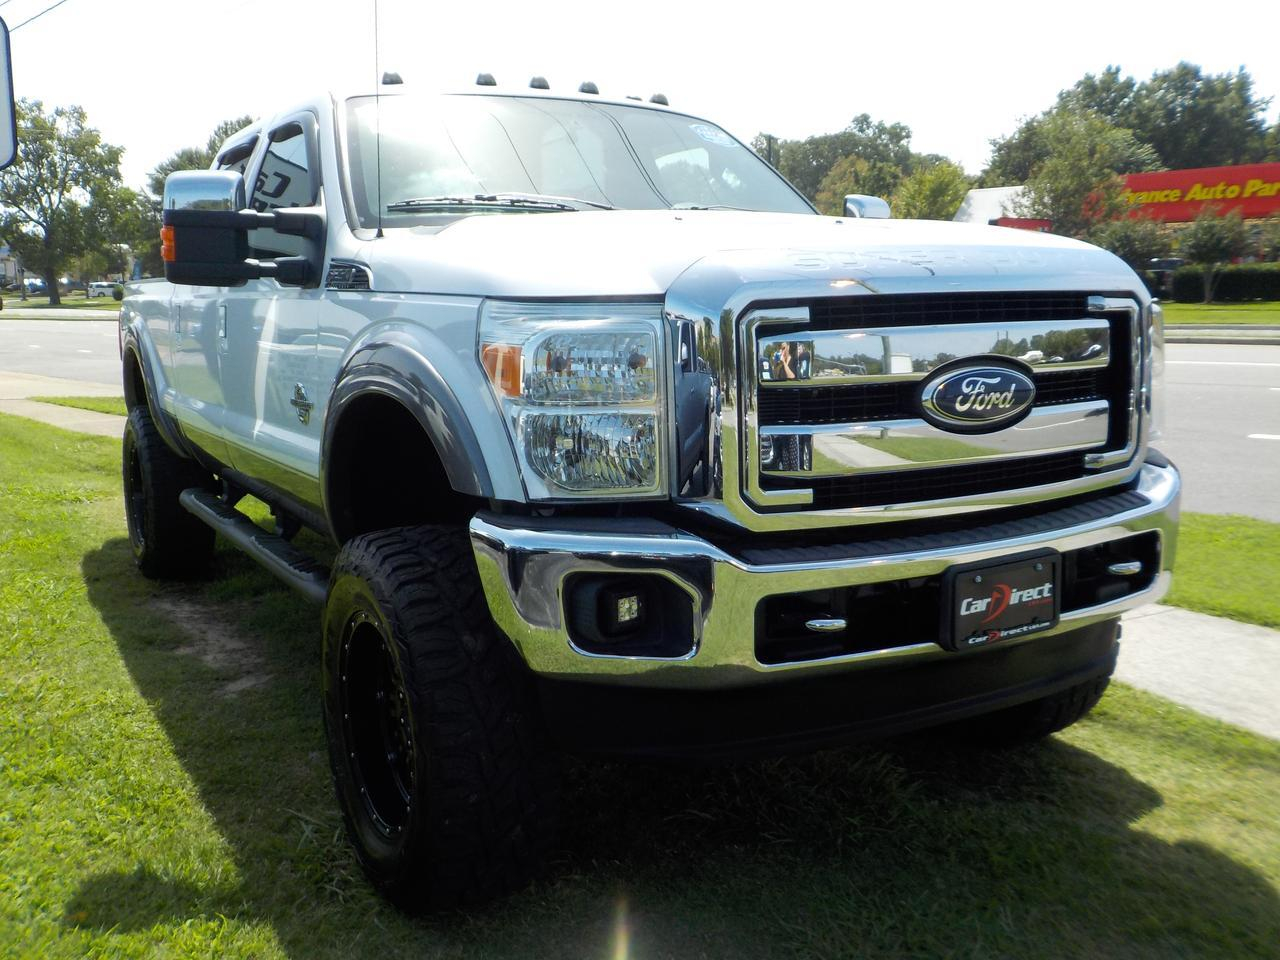 2011 FORD F-250 LARIAT SUPER DUTY 4X4, DIESEL, LEATHER HEATED SEATS, RUNNING BOARDS, SYNC, BACK UP CAM & SENSORS! Virginia Beach VA